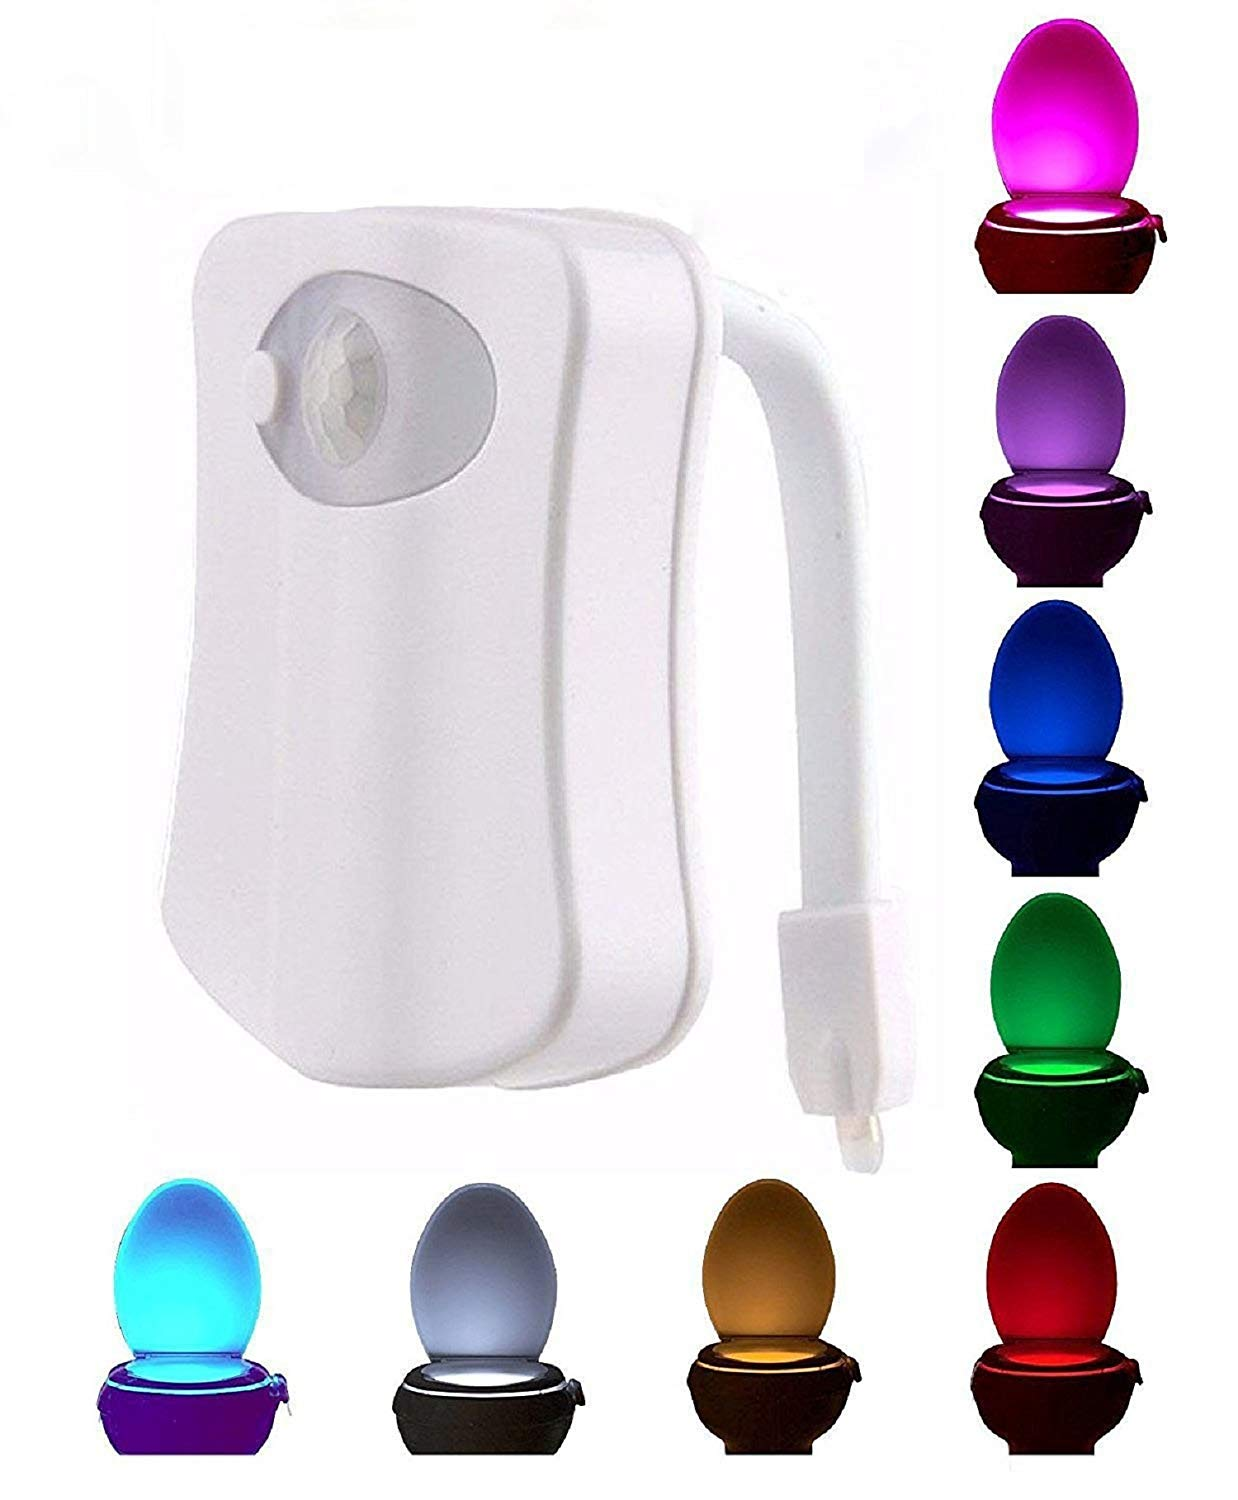 Luce LED per water toilette WC gabinetto con sensore moviento. Batterie incluse.